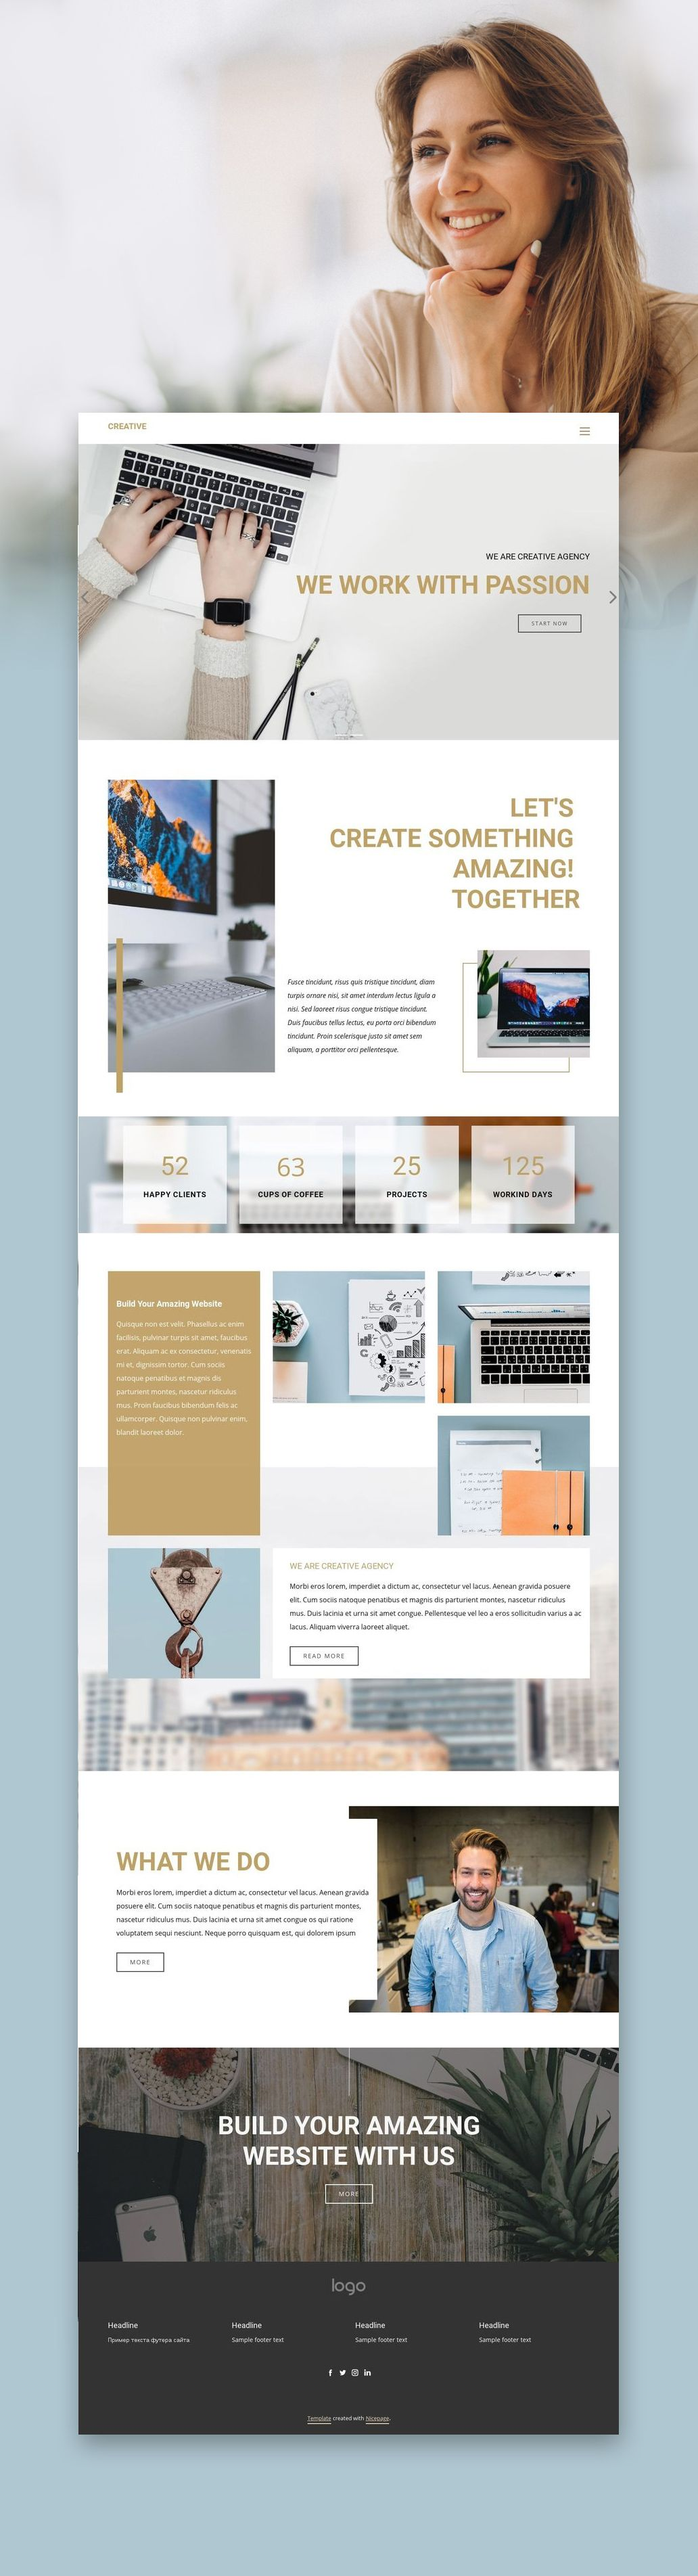 Nicepage Is A Free Mobile Friendly Website Builder Choose From 1000 Trendy Web Templates Customize To Get The Exact Web Dizajn Veb Sajtov Veb Dizajn Dizajn